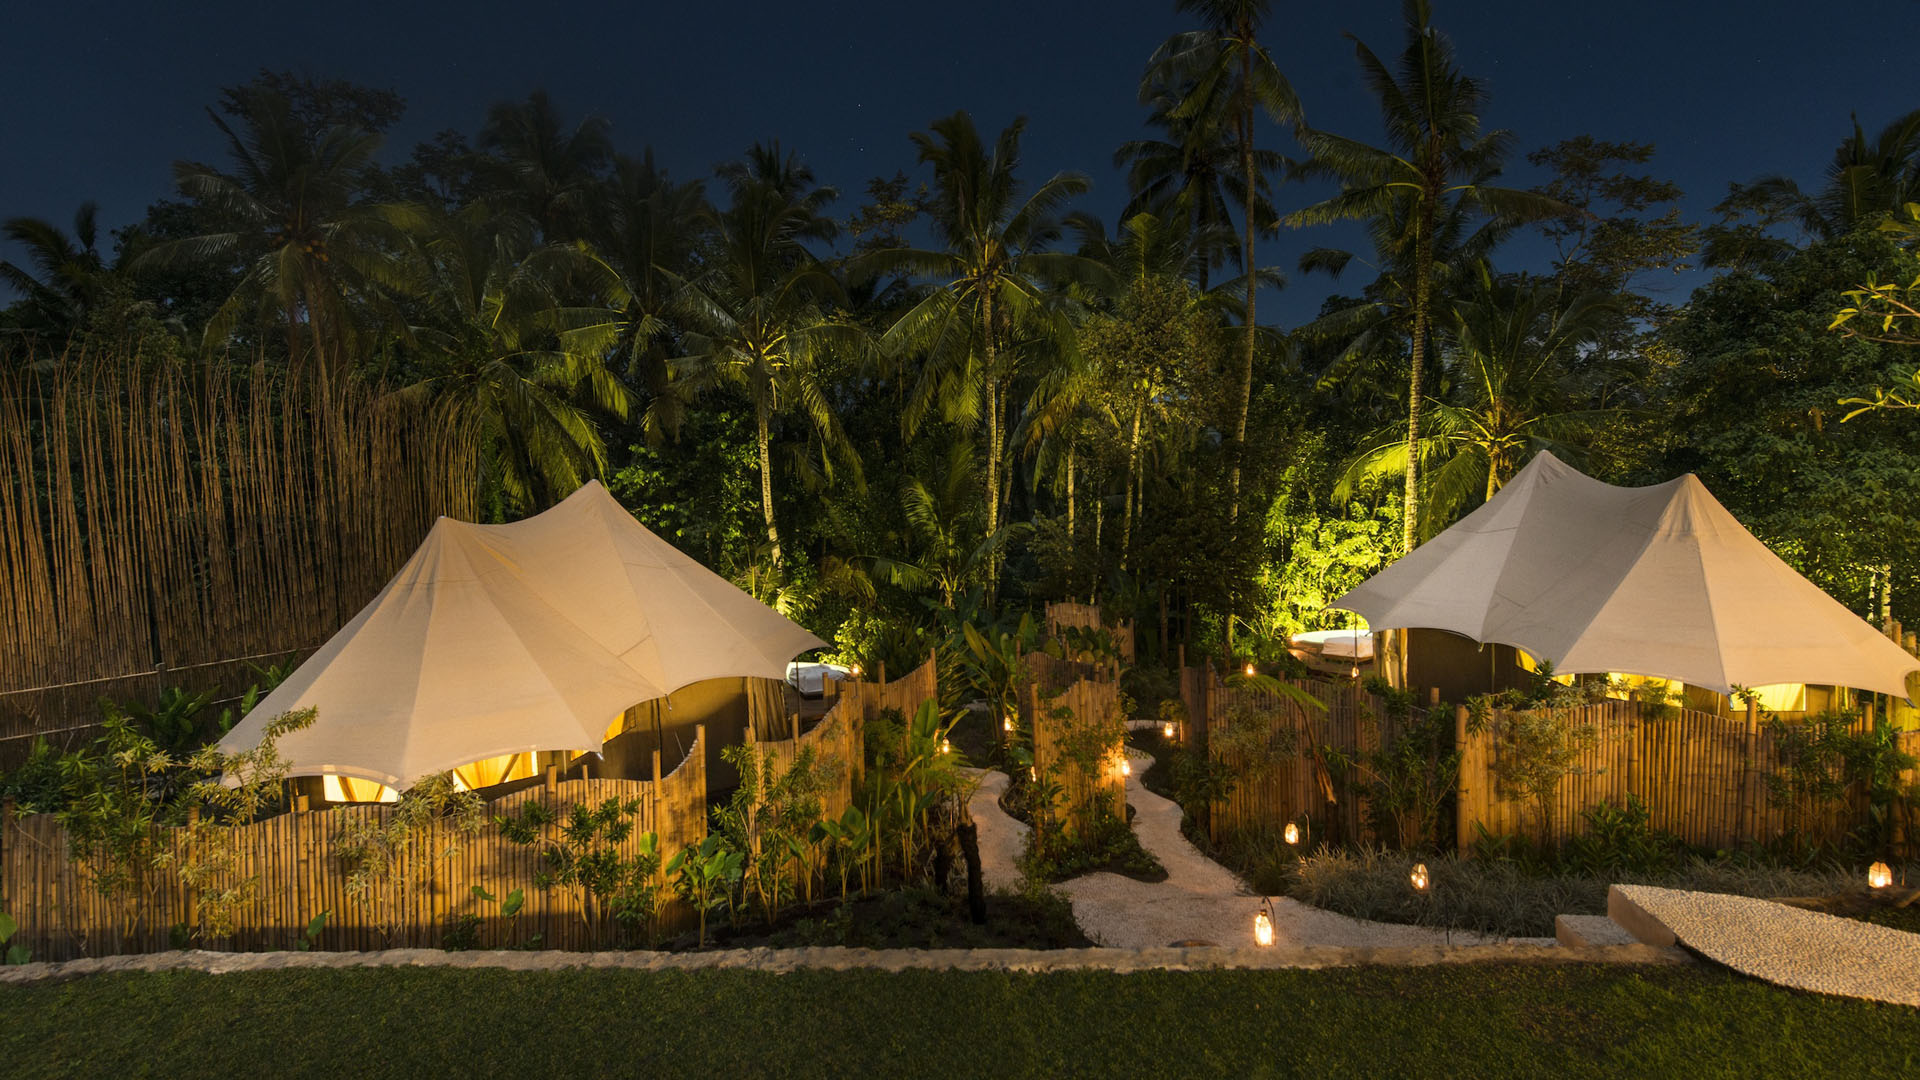 5 Unbelievably Amazing Glamping Sites in Bali